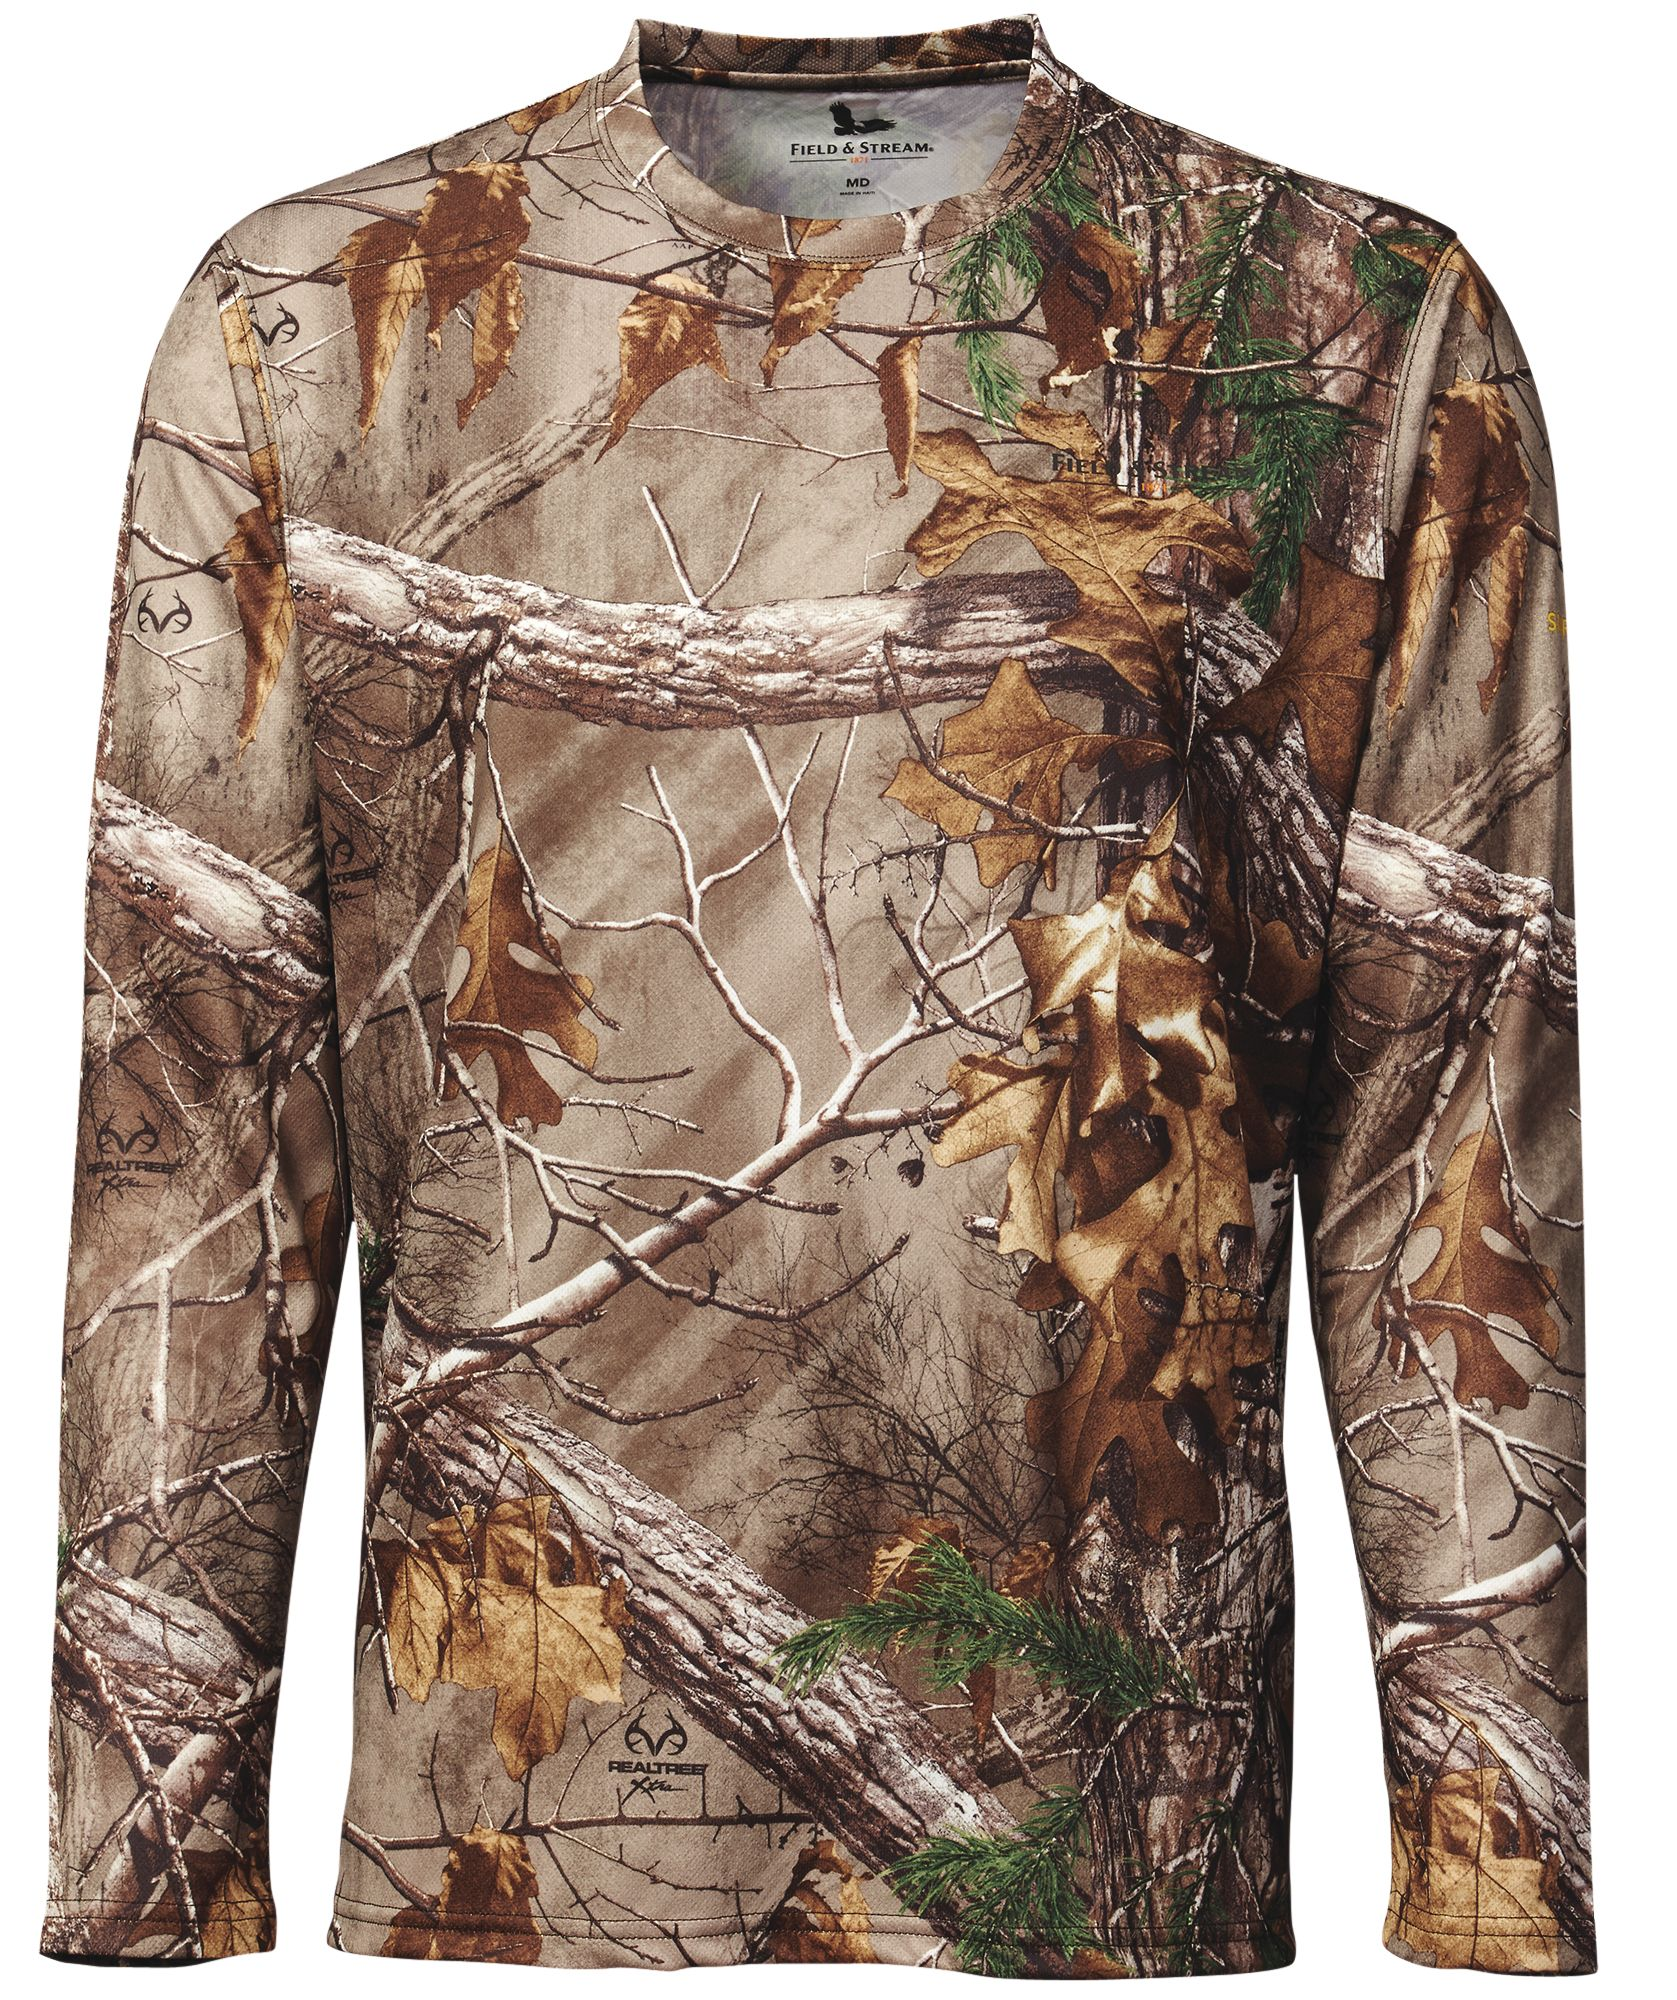 Field & Stream Men's Performance Camo Long Sleeve Shirt, XXL, Brown